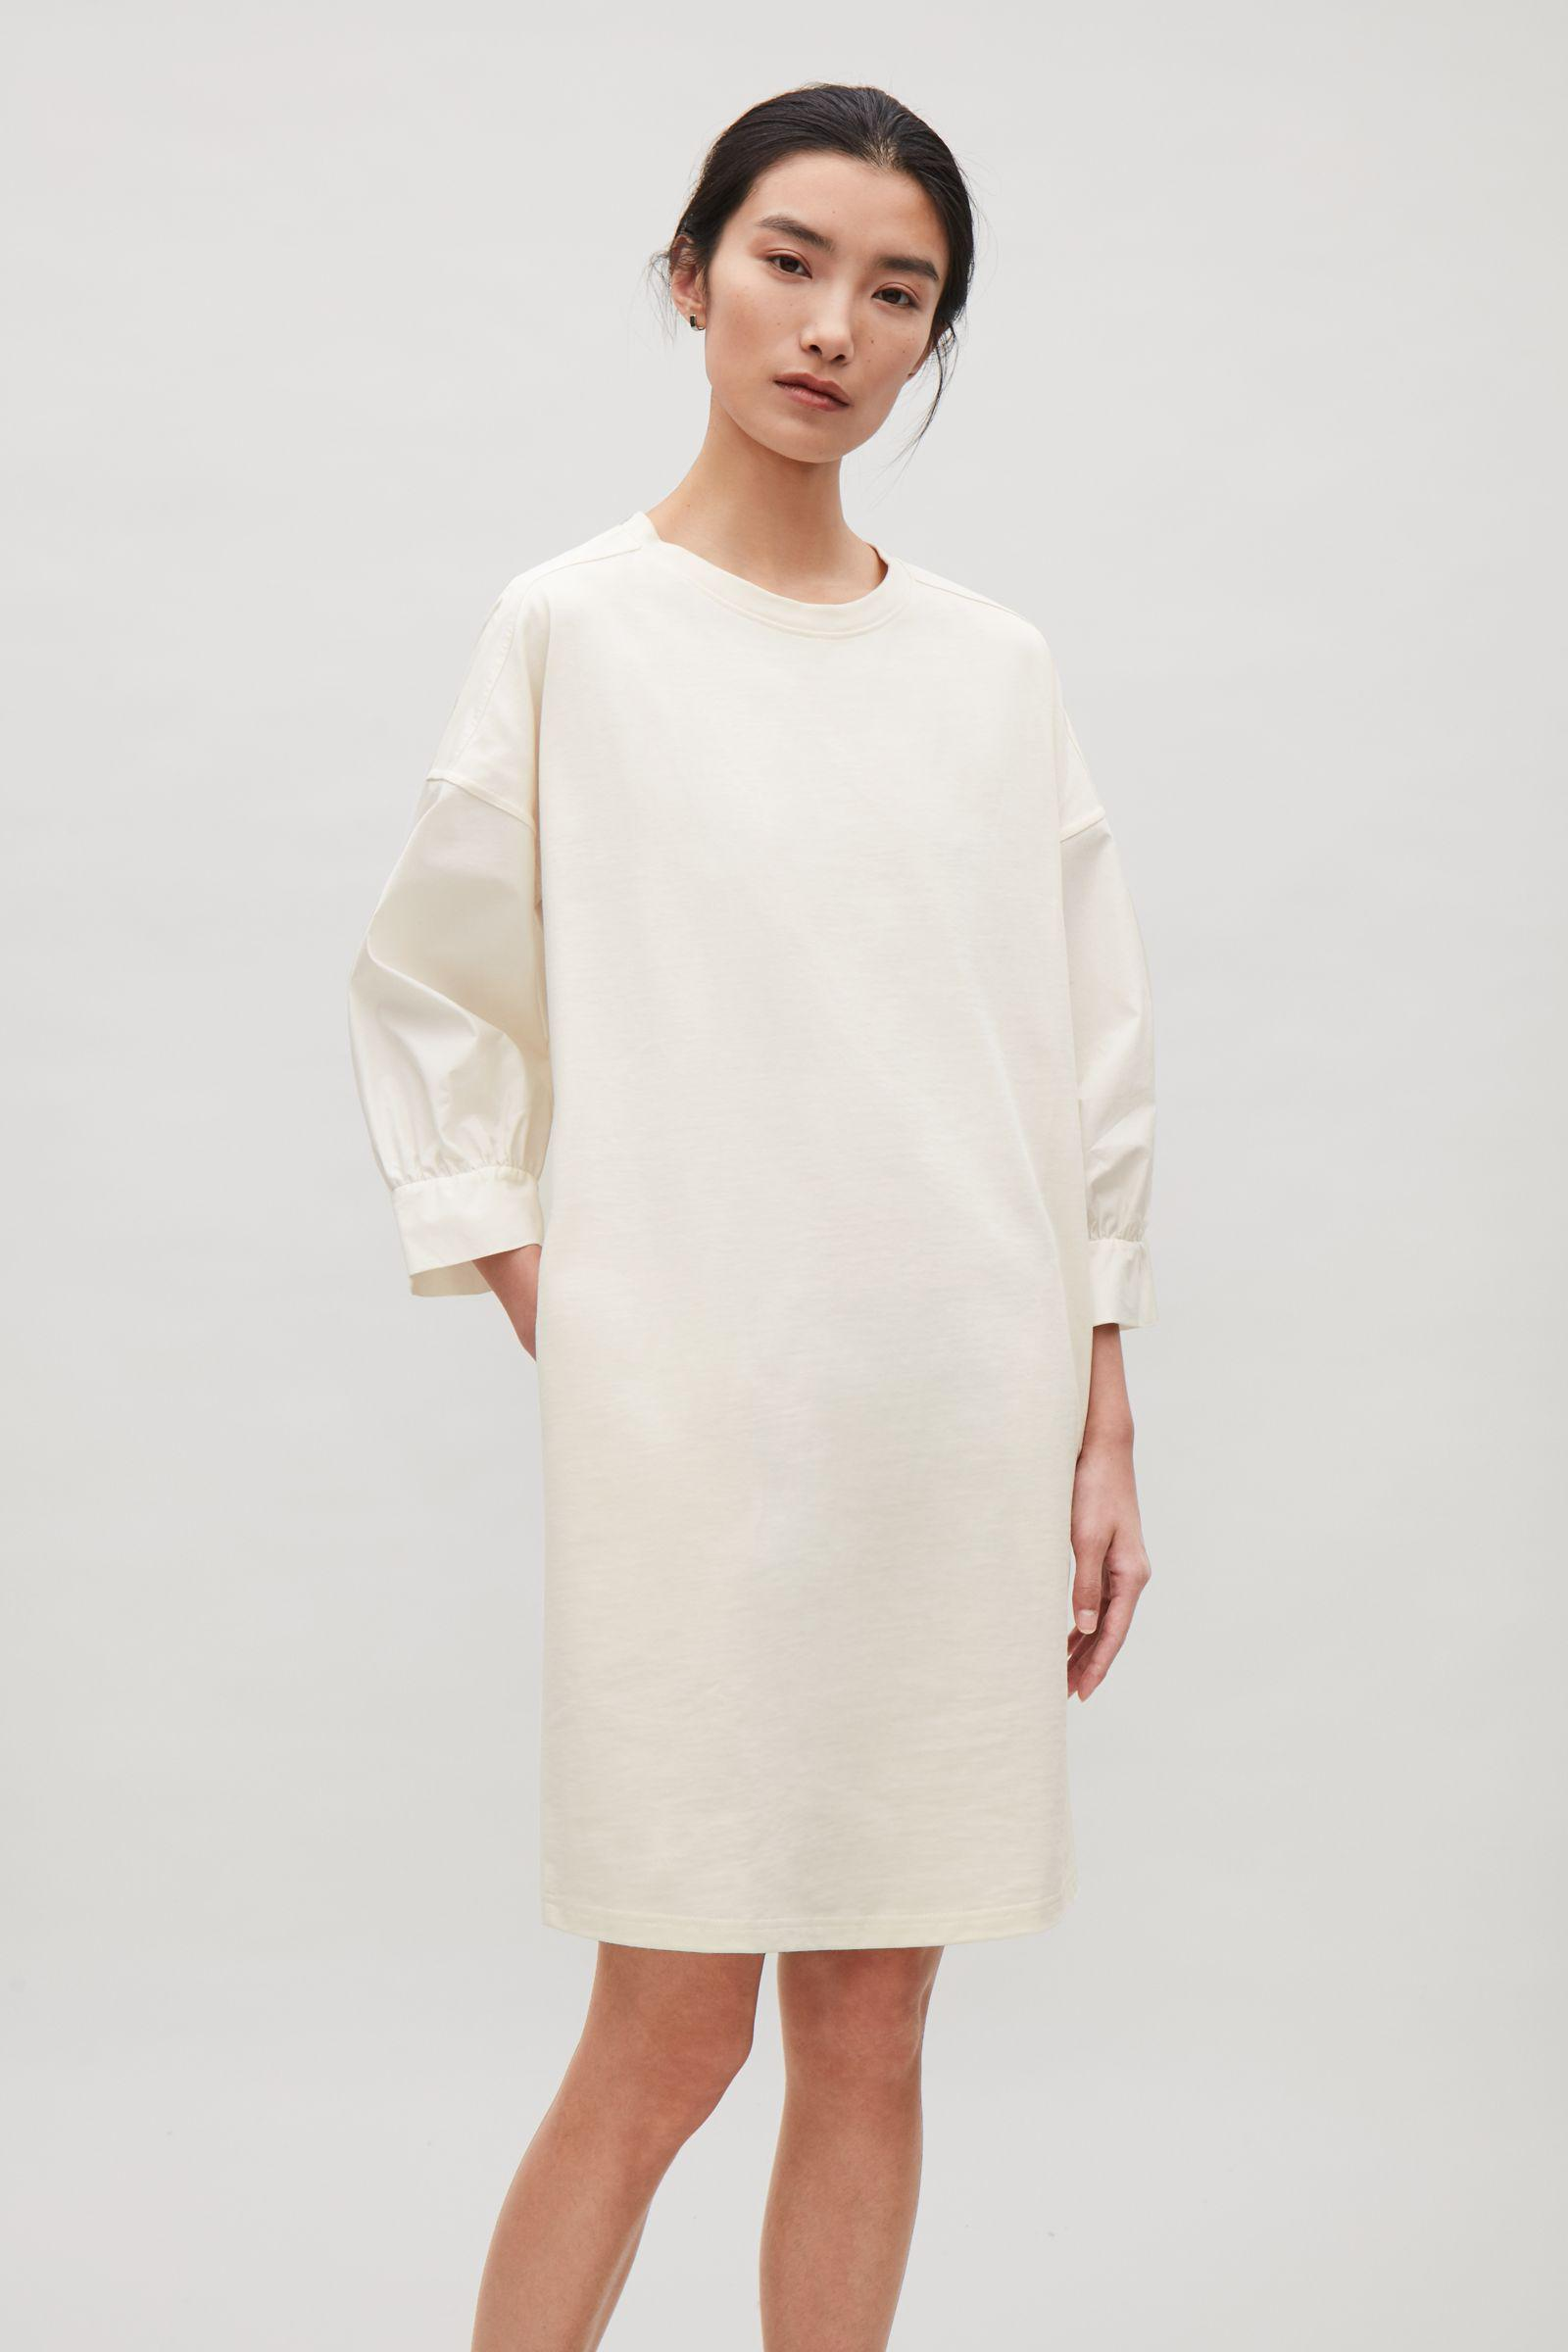 2d4cdd2132f7 COS Cotton Jersey And Poplin Dress in White - Lyst